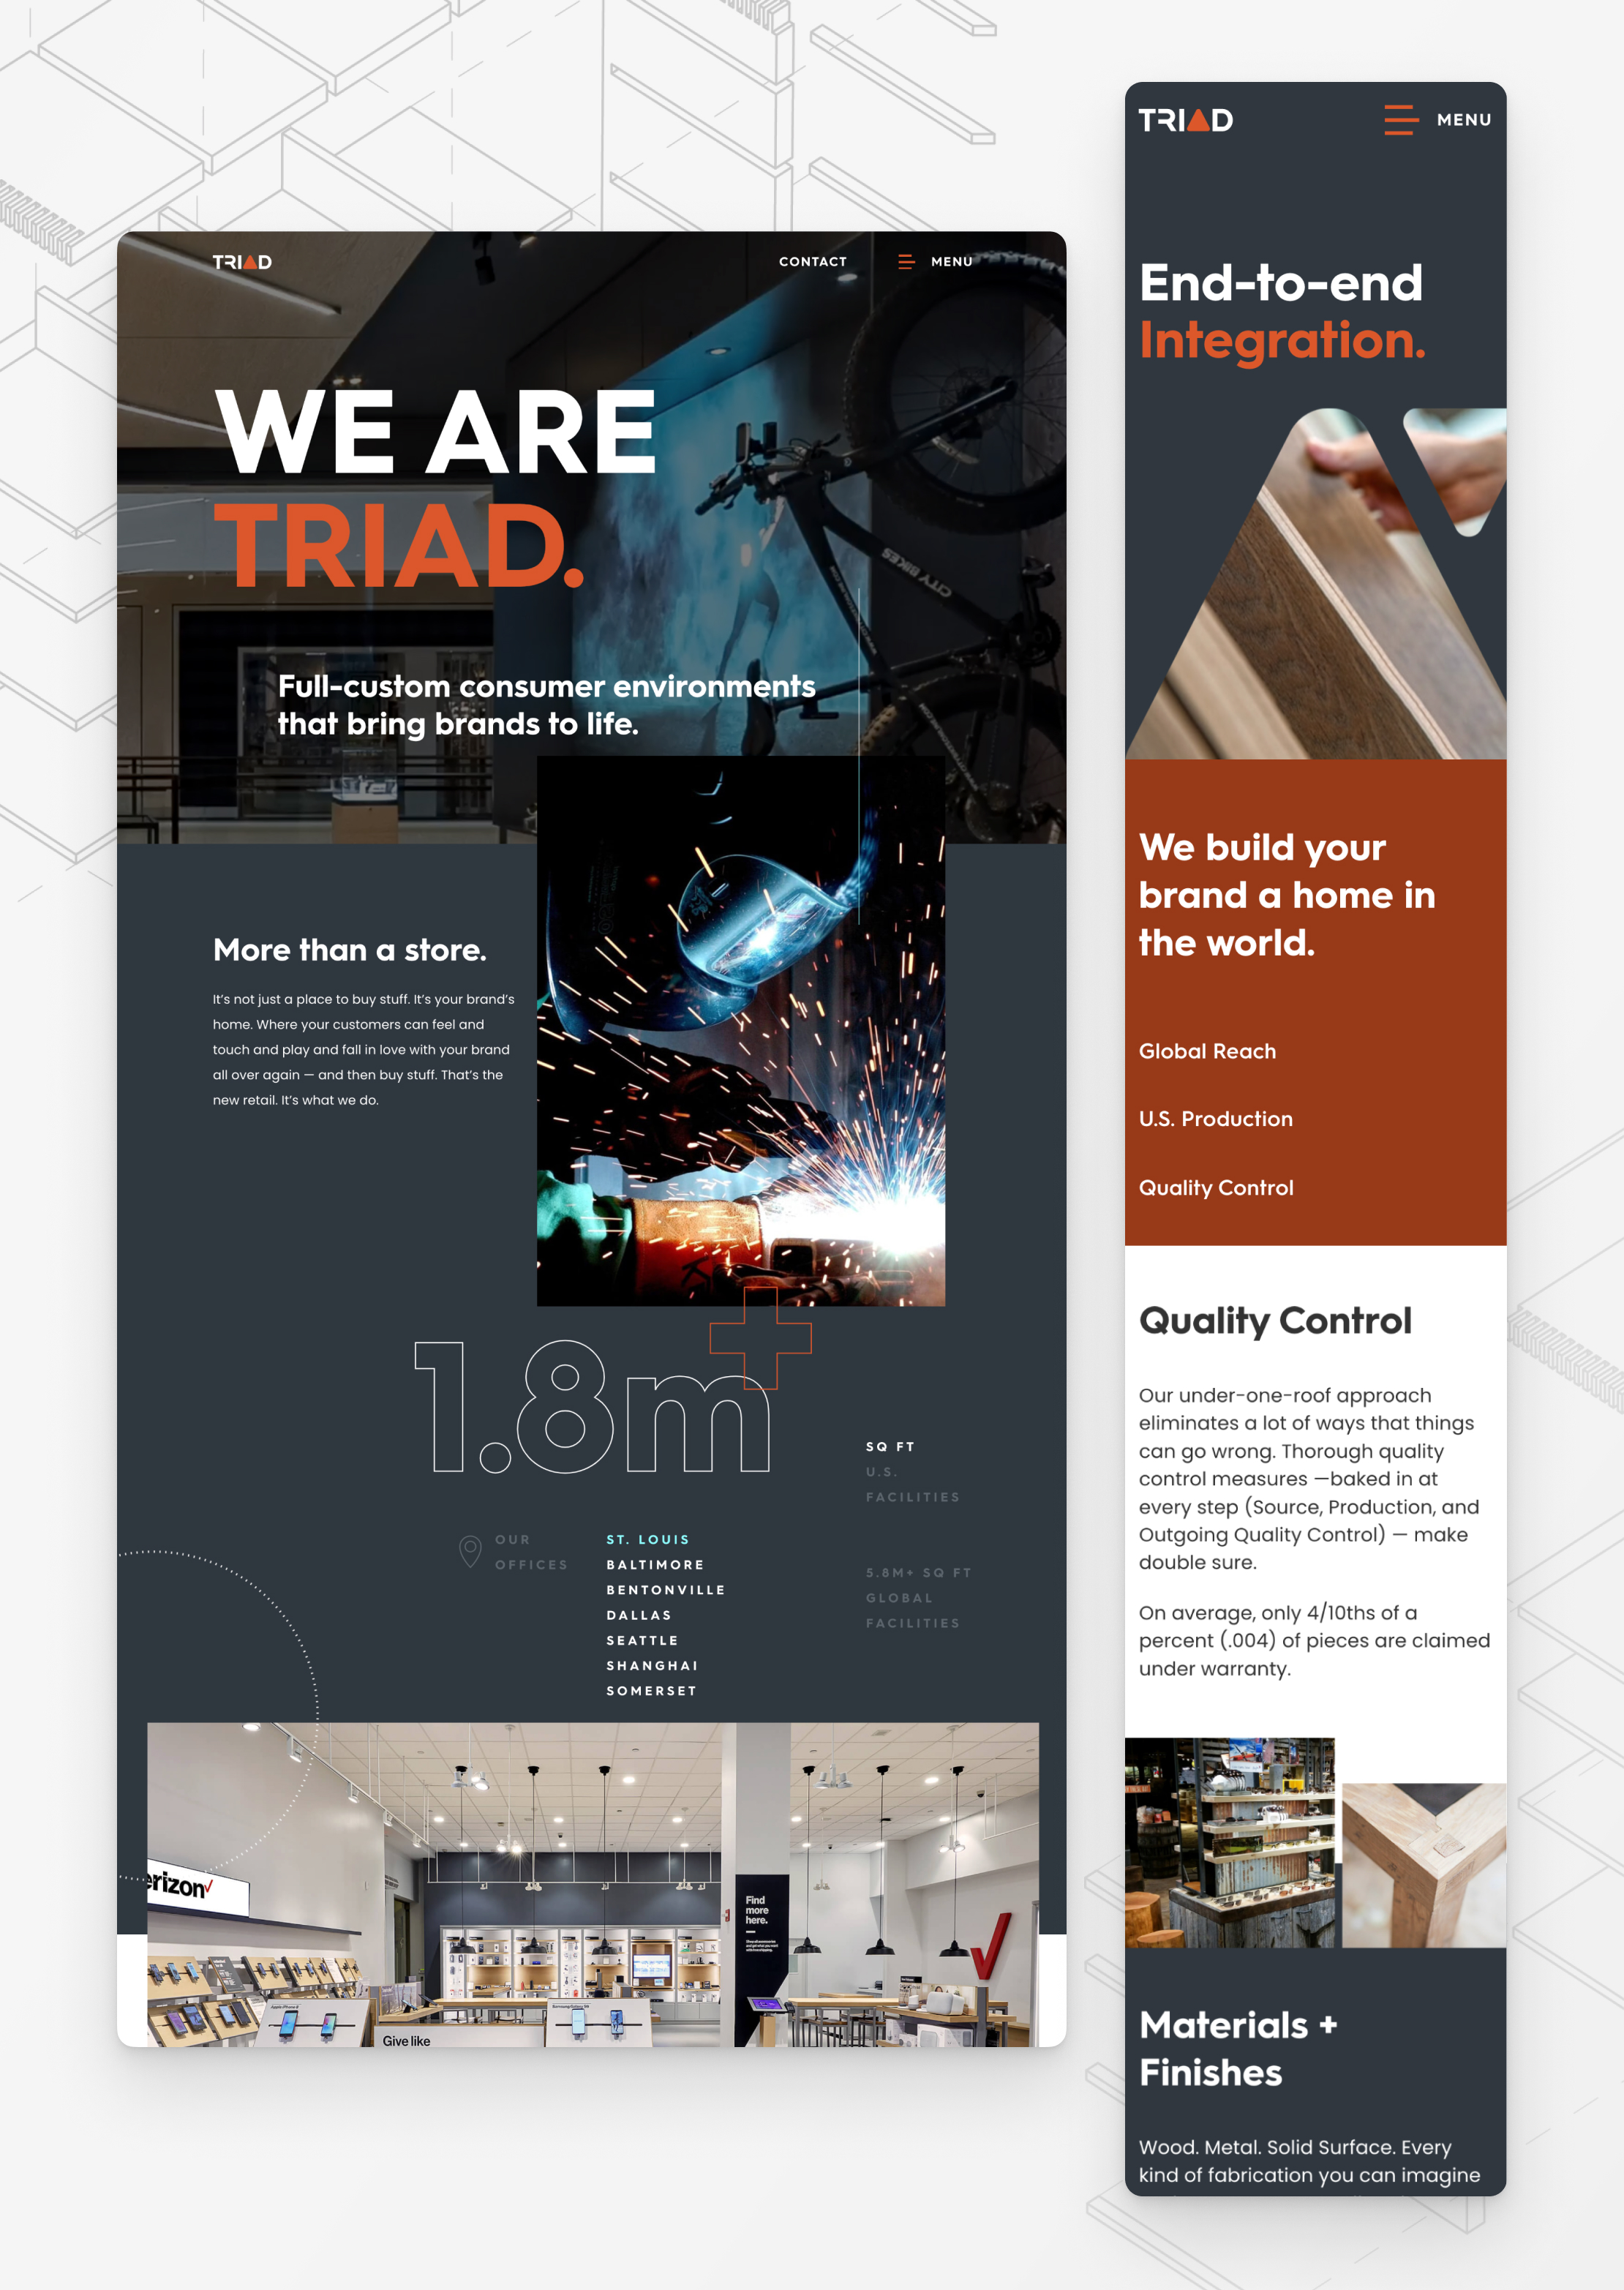 Desktop & mobile screen captures of Triad Manufacturing's website pages.